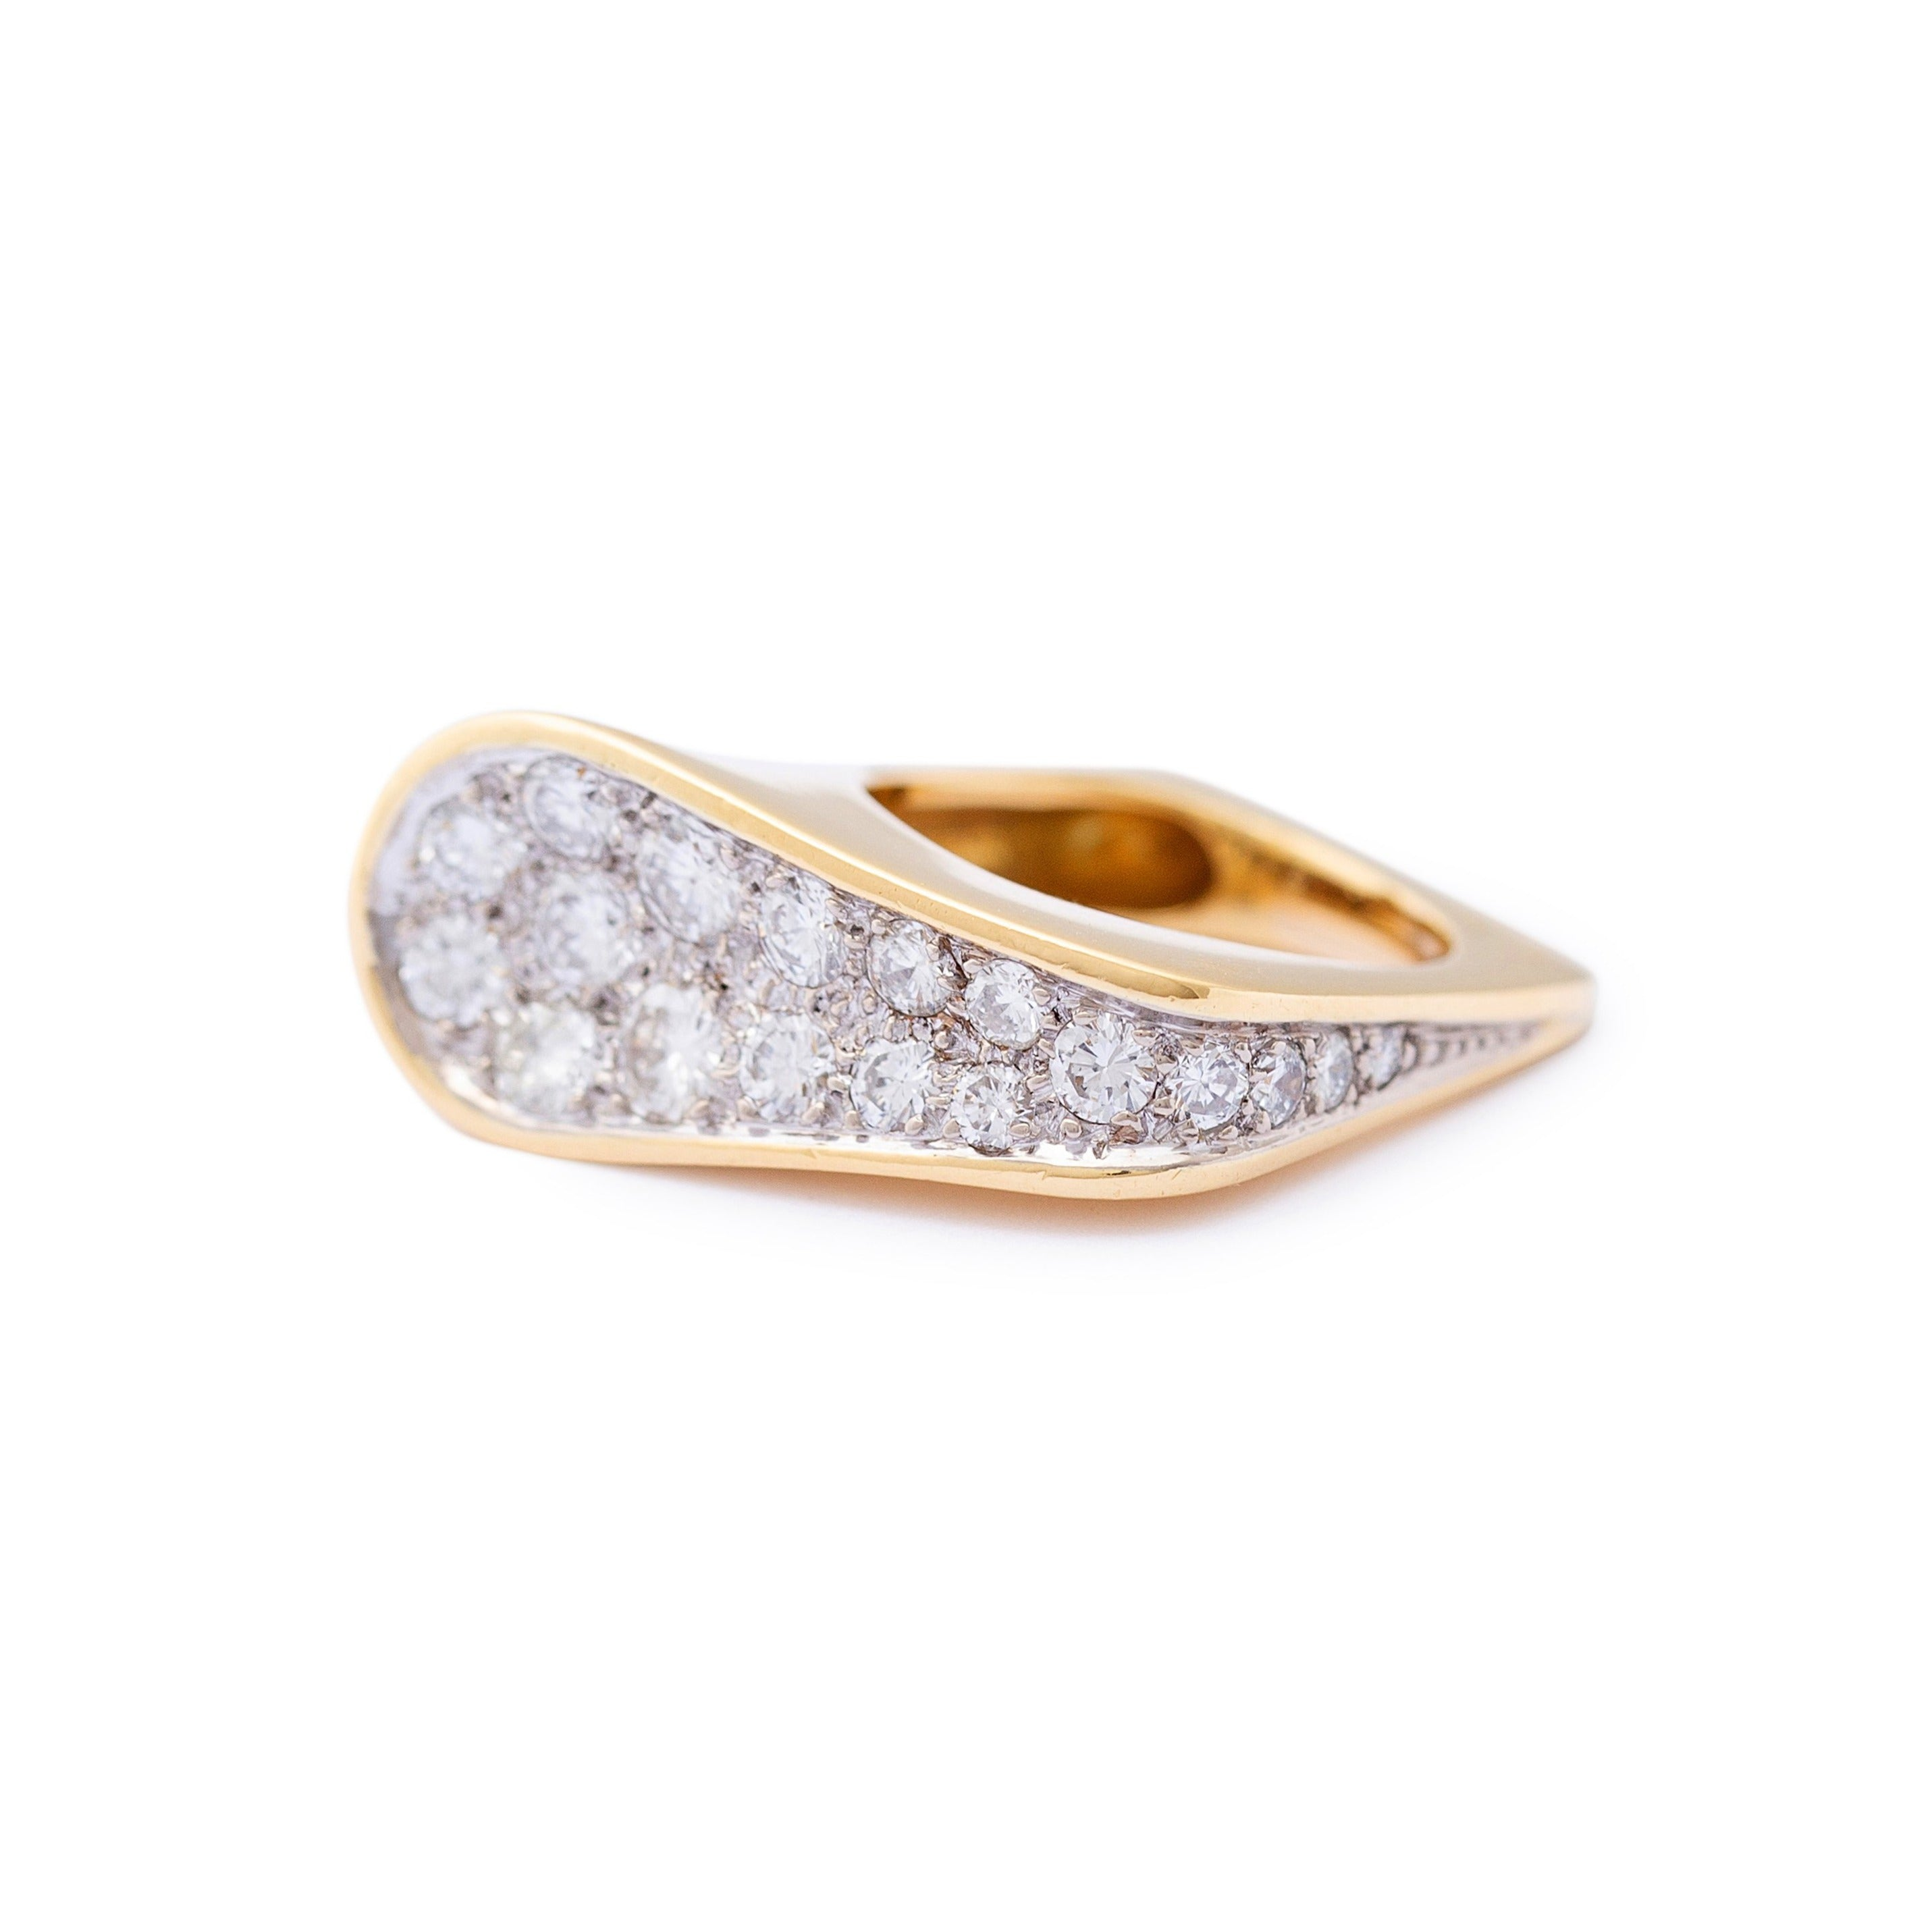 Kutchinsky Modernist Diamond and 18k Gold Cocktail Ring